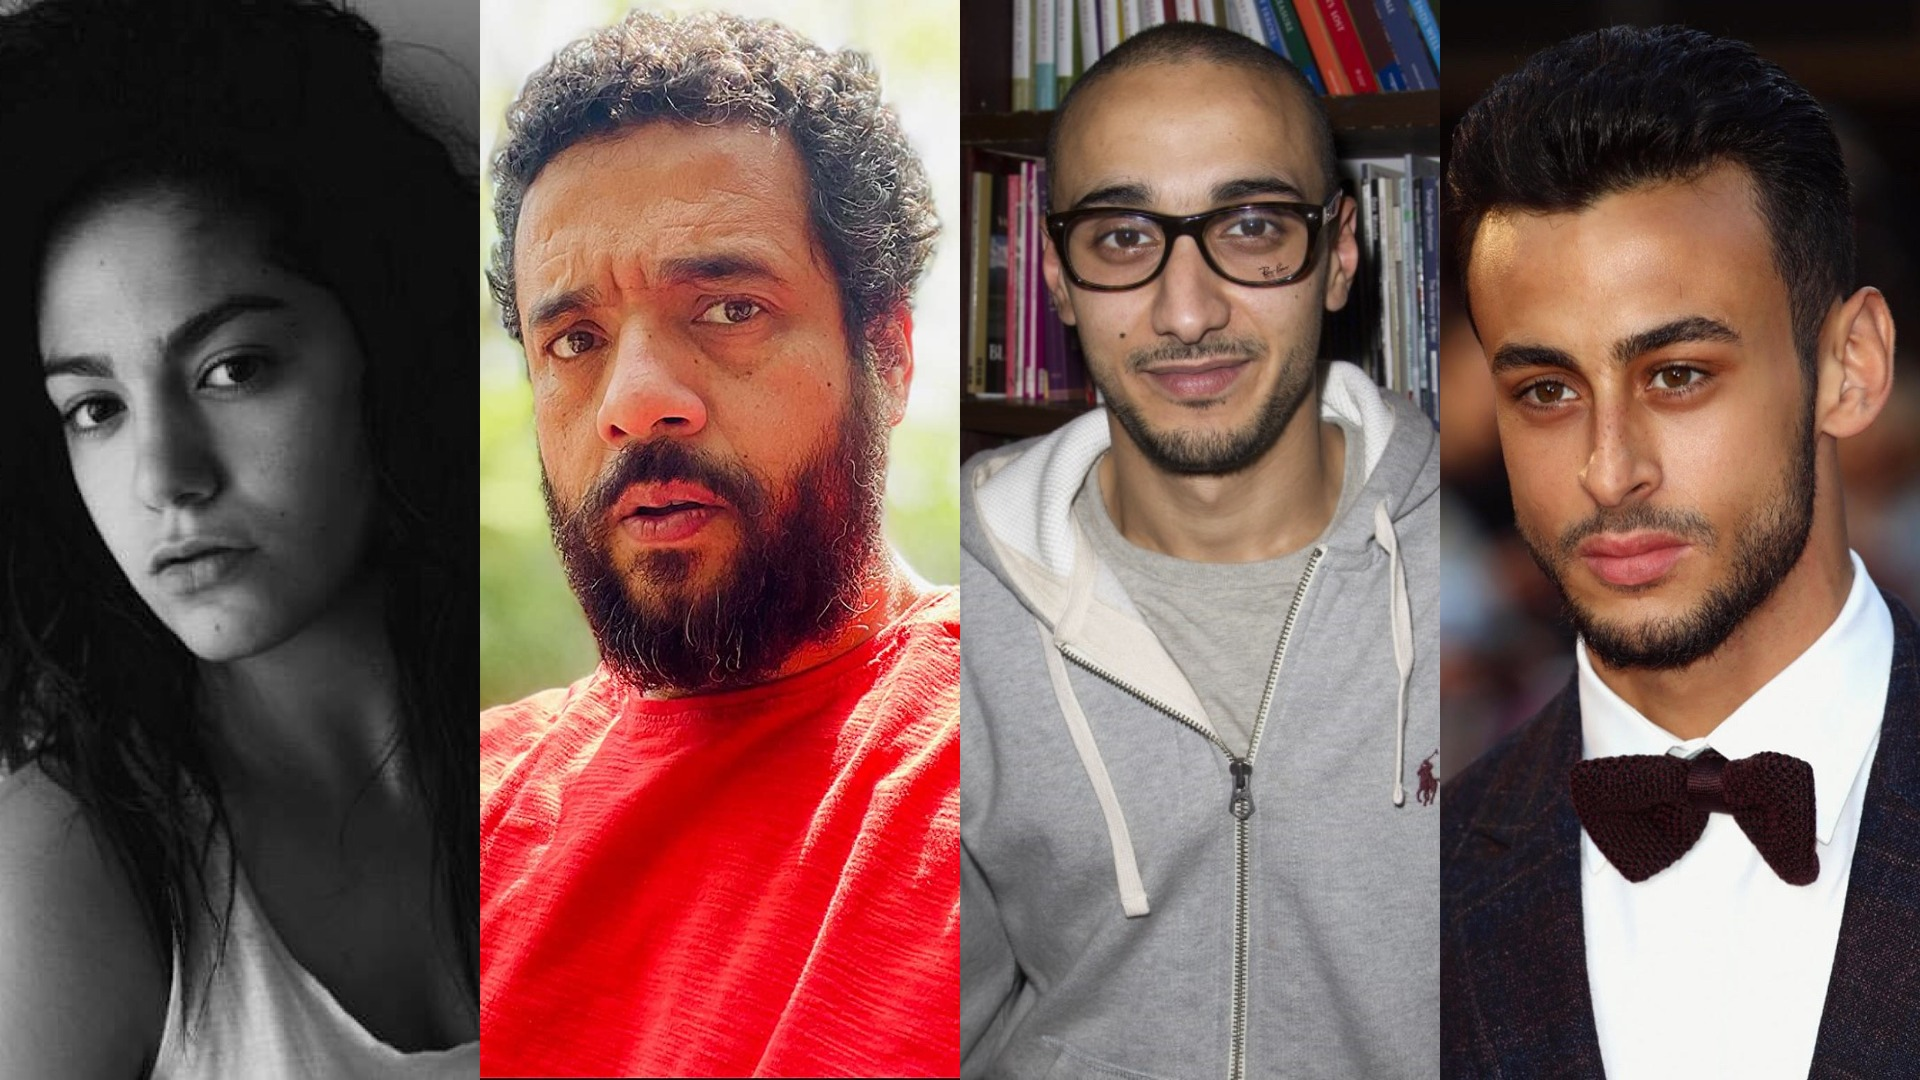 Deadline is reporting that Jasmine Armando, Salem Kali, Aymen Hamdouchi and Fady El-Sayed are the latest names to join the cast for the upcoming second season of crime drama series Gangs of London.